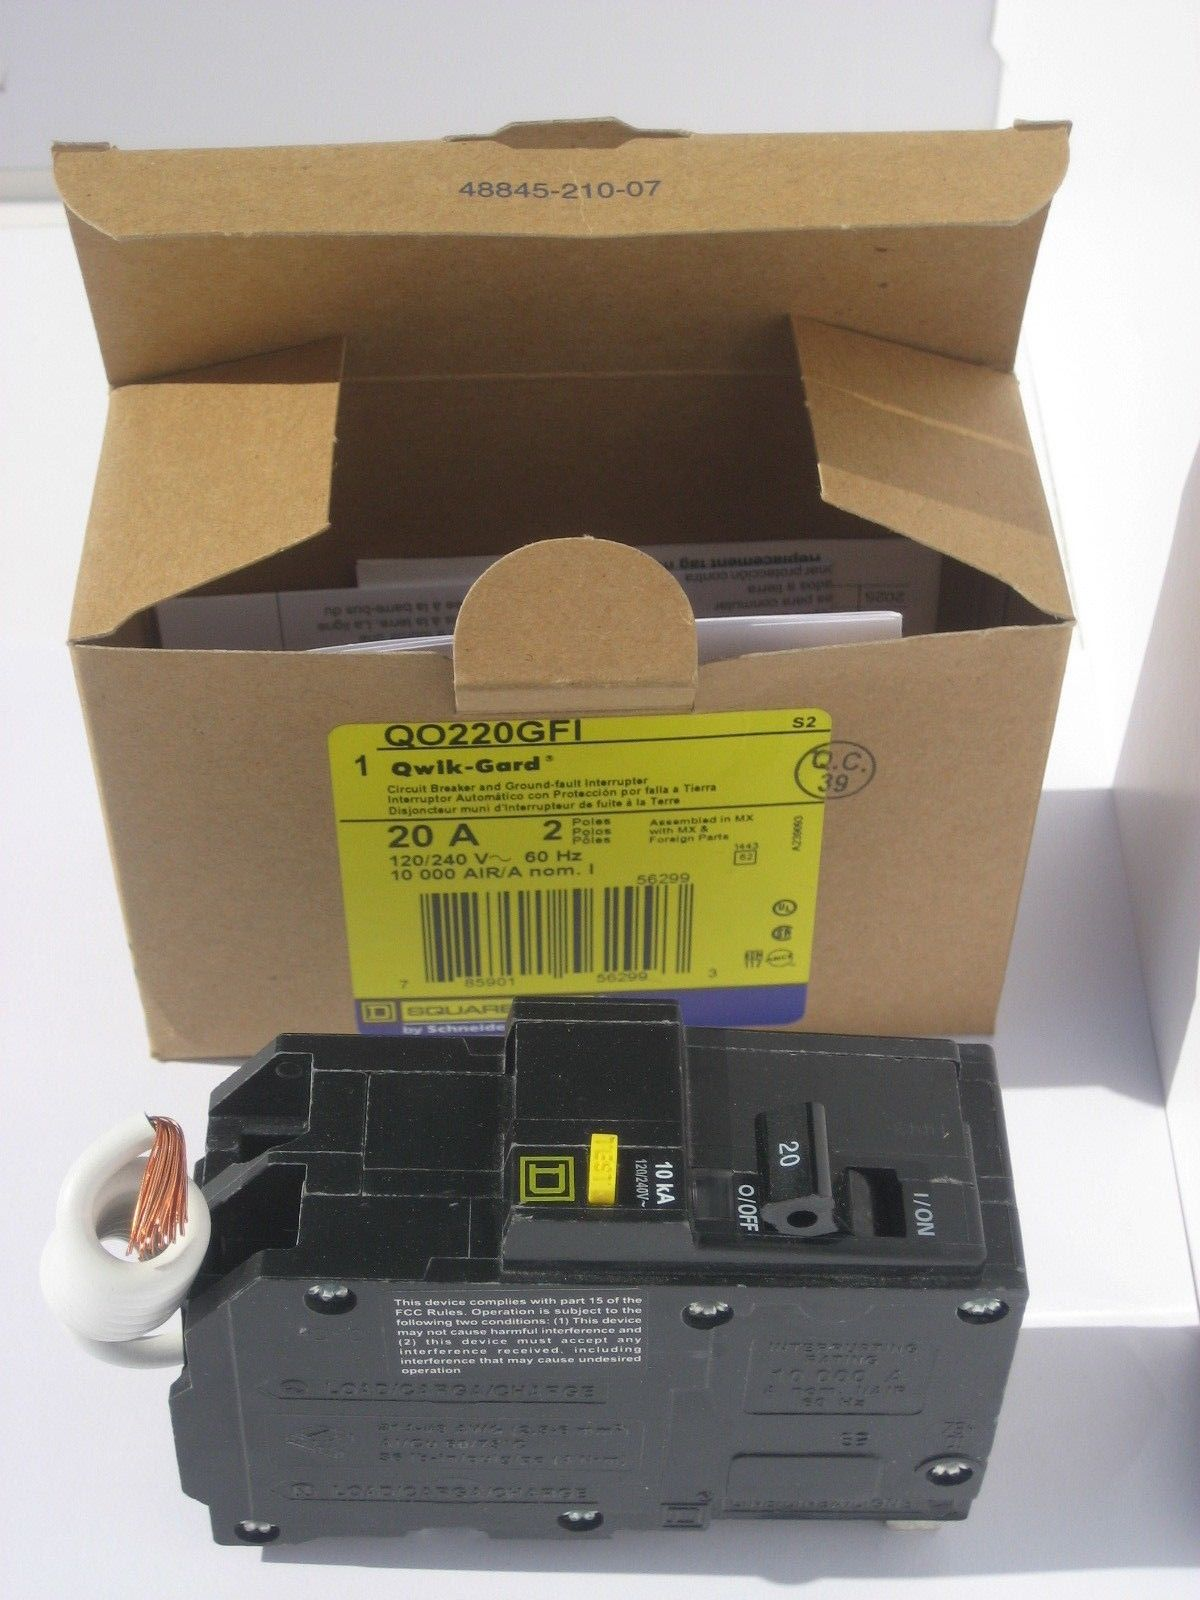 NIB SQUARE D QO220GFI 2 Pole 20 Amp QO Ground Fault Breaker GFCI QO STYLE 331507582449 3?fit=1200%2C1600&ssl=1 nib square d qo220gfi 2 pole 20 amp qo ground fault breaker gfci 20 Amp 125 Volt Outlet at eliteediting.co